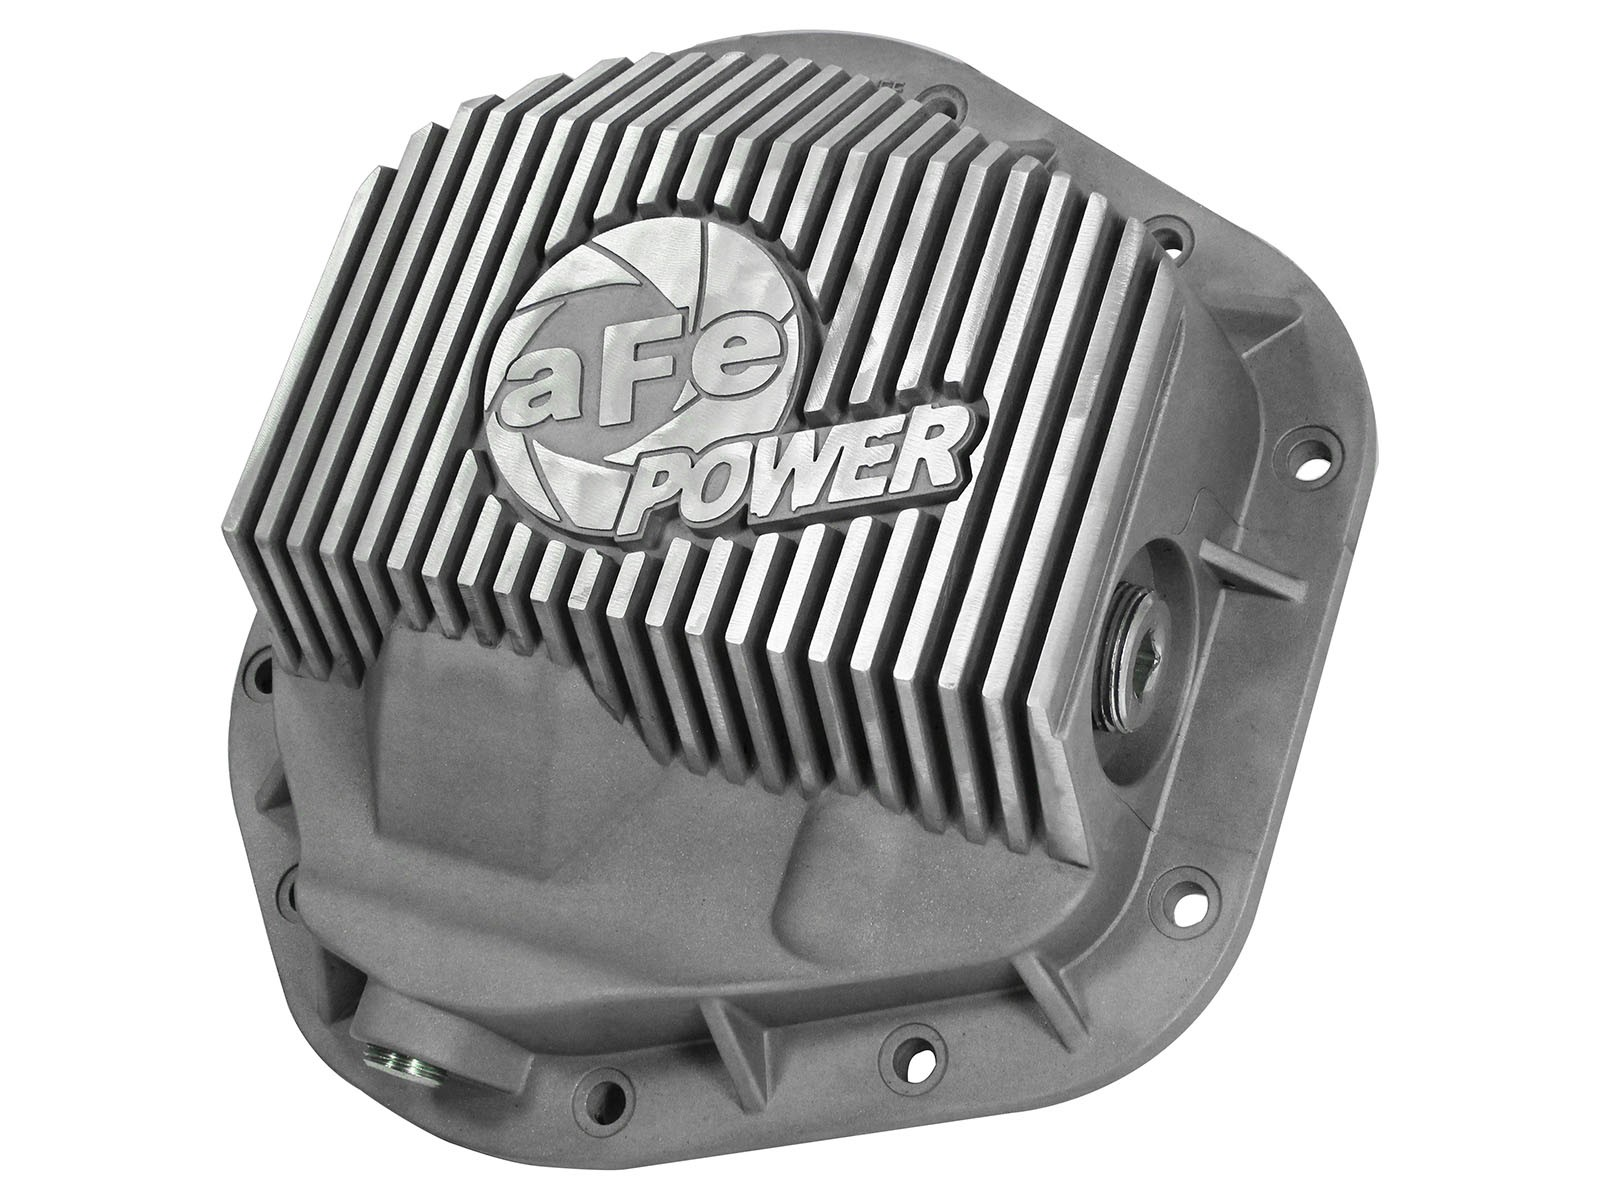 aFe Power Street Series Front Differential Cover Dana 50/60/ 61- Raw Finish (99-16 F-250/F-350)